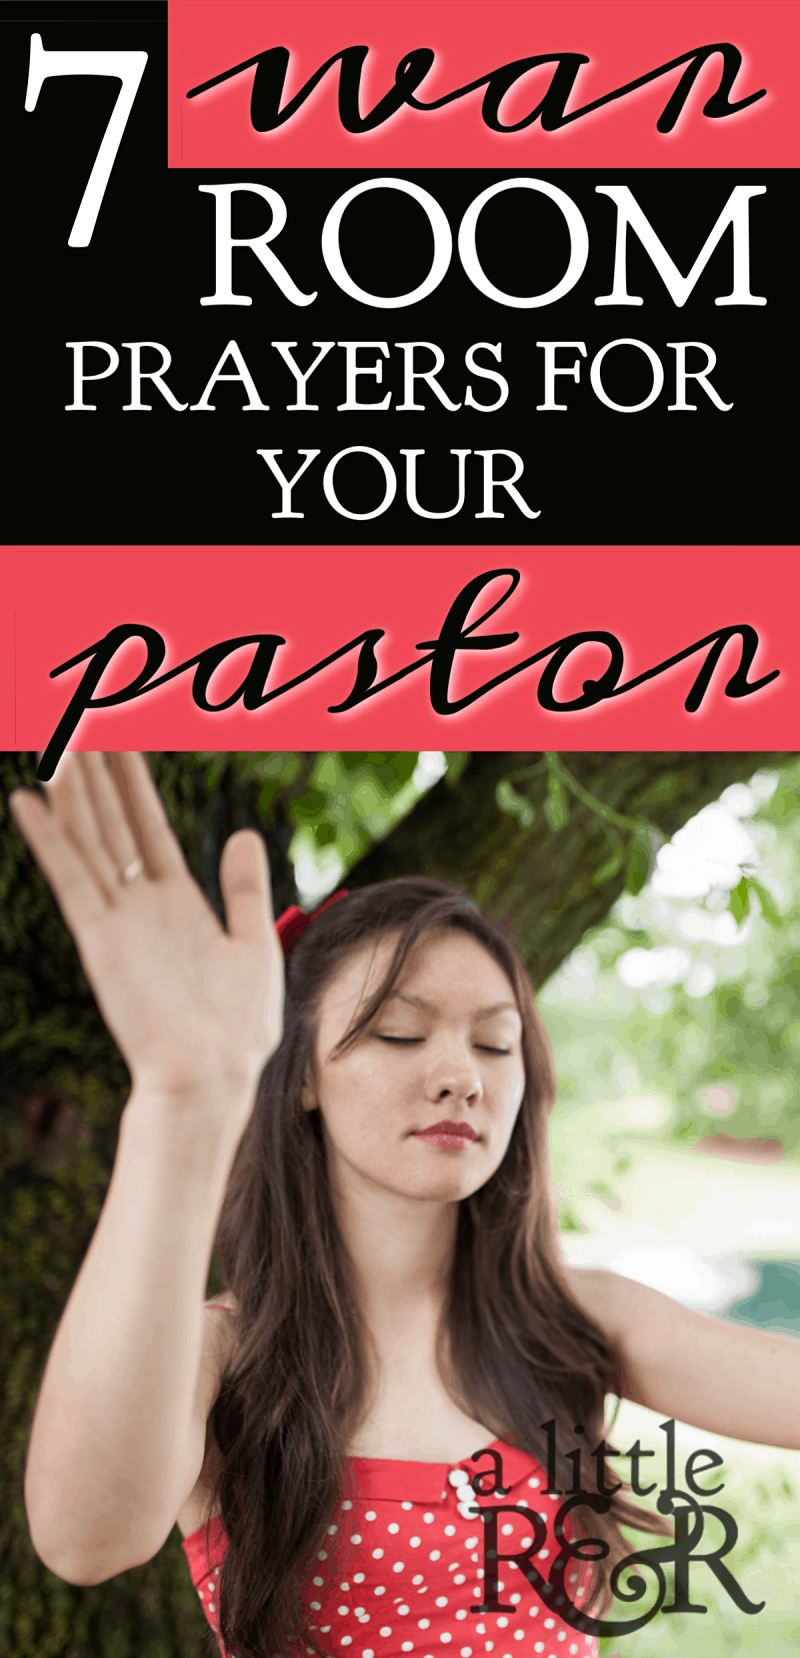 Pastors face a unique kind of stress, and often battle depression and anxiety. Here are 7 Bible verses to daily pray over your pastor. #alittlerandr #warroom #pastors #prayer